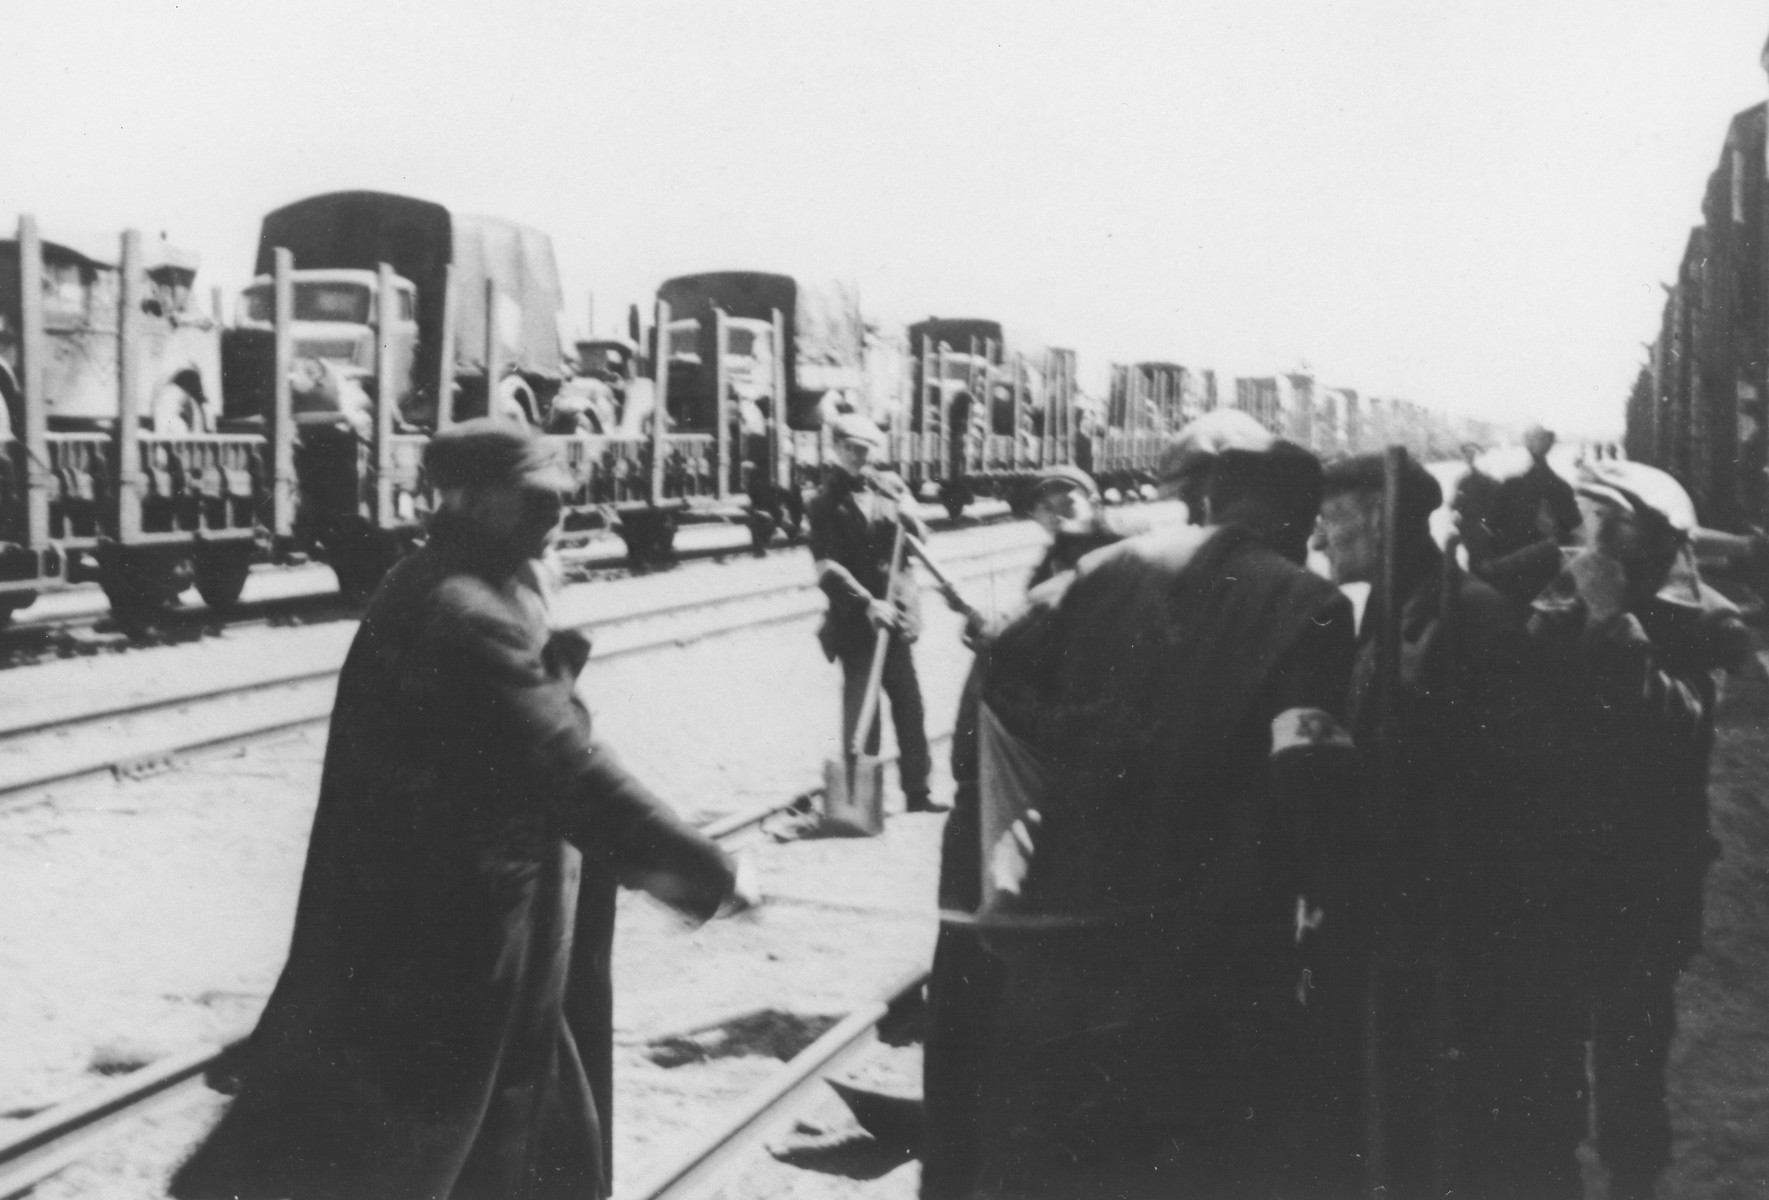 A group of Jewish men wearing armbands works at a railyard in Poland.  In the background is a long train carrying trucks.